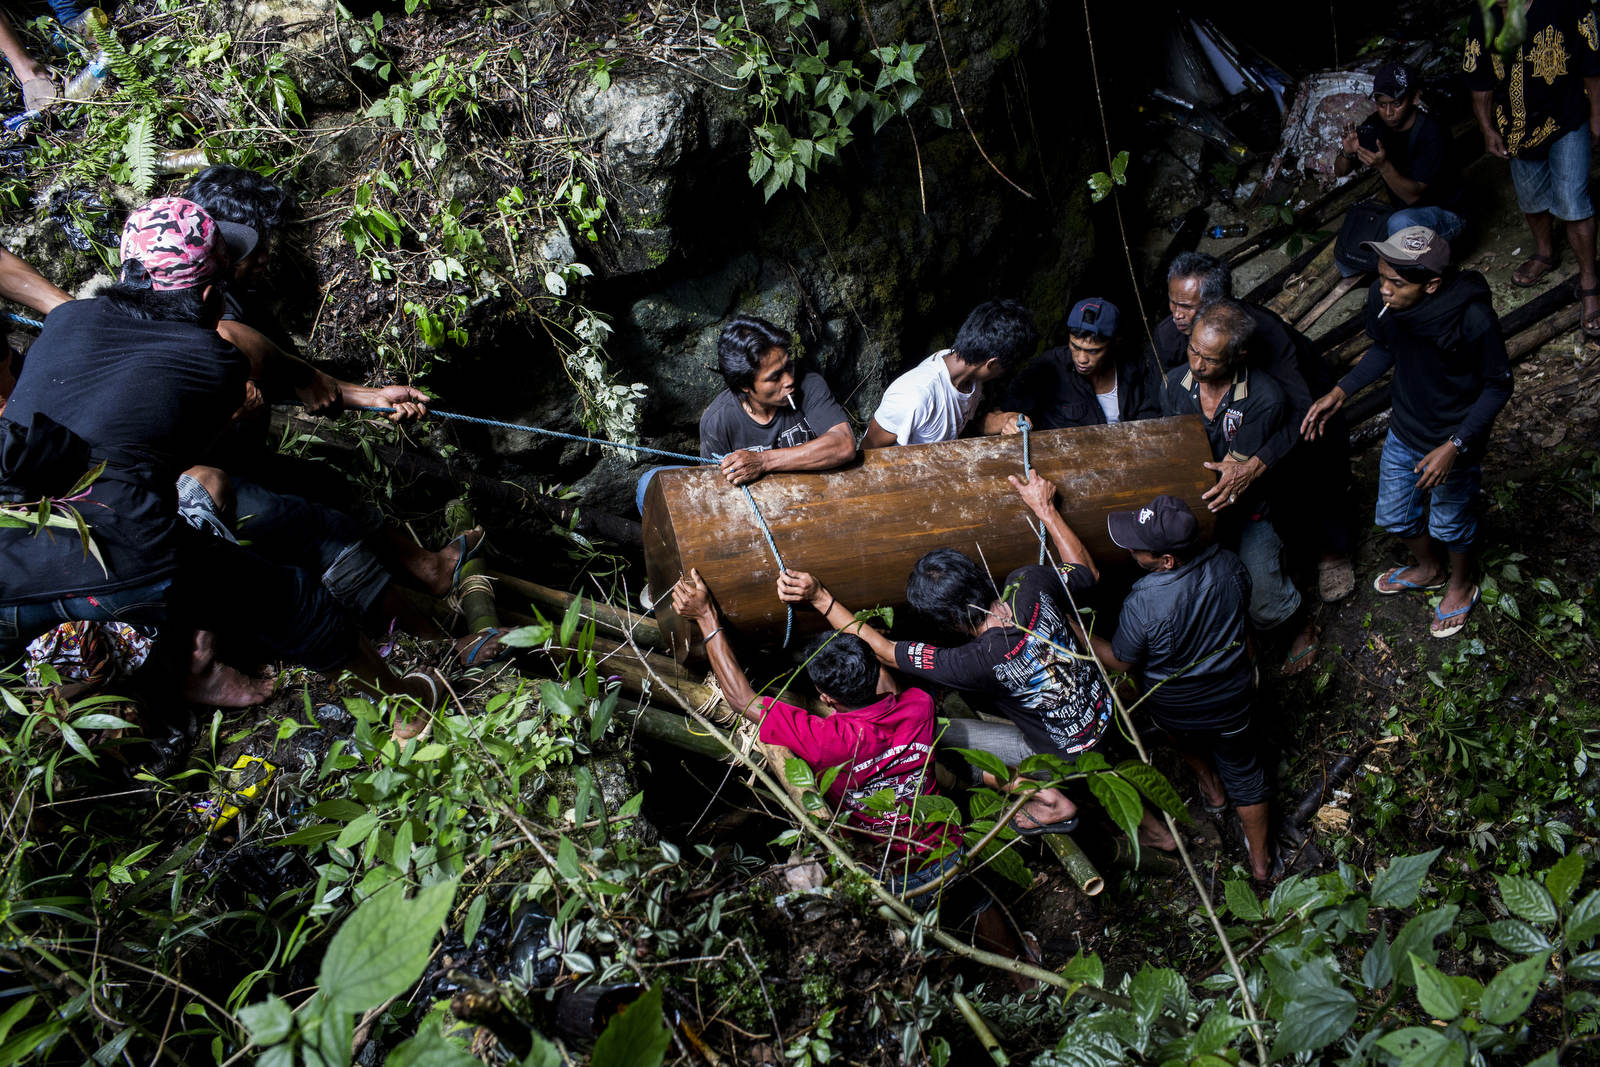 Men lower a coffin into a cave in Toraja, a remote part of Sulawesi. There are no traditional graveyards in the region, and instead, people are buried in caves, in carved out caverns in the faces of rocks, or in mini mausoleums in rice paddy fields, so that the deceased is closer to nature and can enter the afterlife.